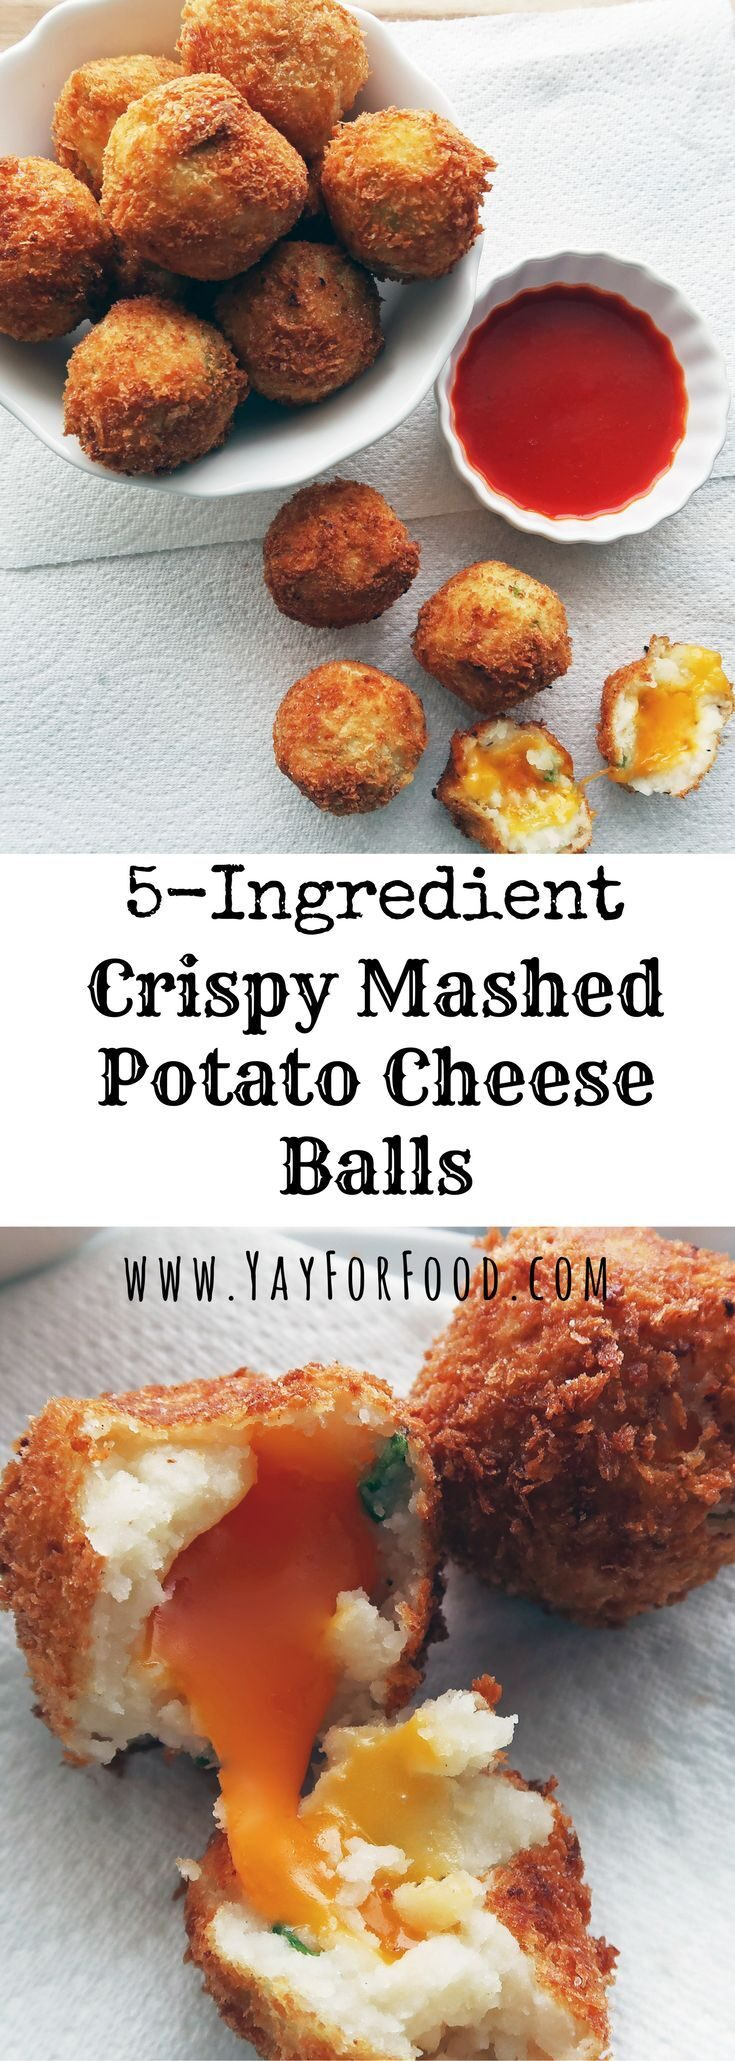 """<span style=""""font-size:14.6667px"""">Got leftover mashed potatoes? Make 5 ingredient Crispy Mashed Potato Balls! The outside is crispy and golden-brown and the inside contains the soft and fluffy mashed potatoes with melty cheddar cheese. Perfect for snacking!</span>"""